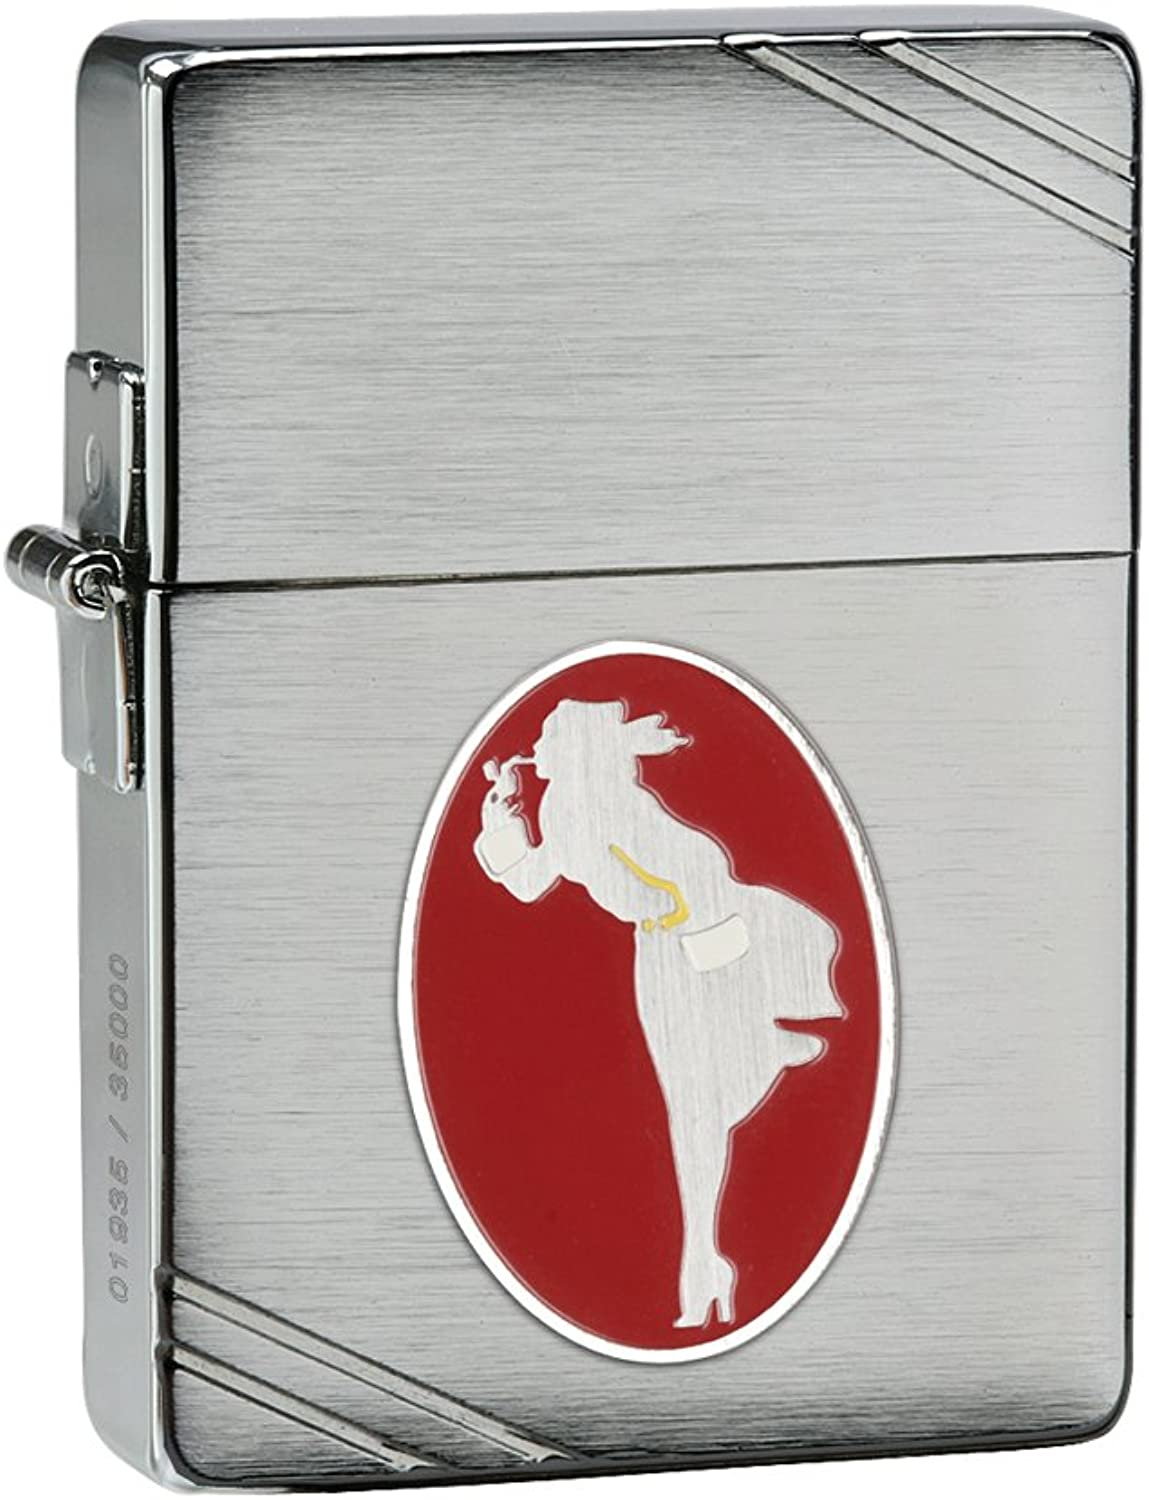 Zippo 1935 Replica Windy Collectible of the Year Pocket Lighter Brushed Chrome